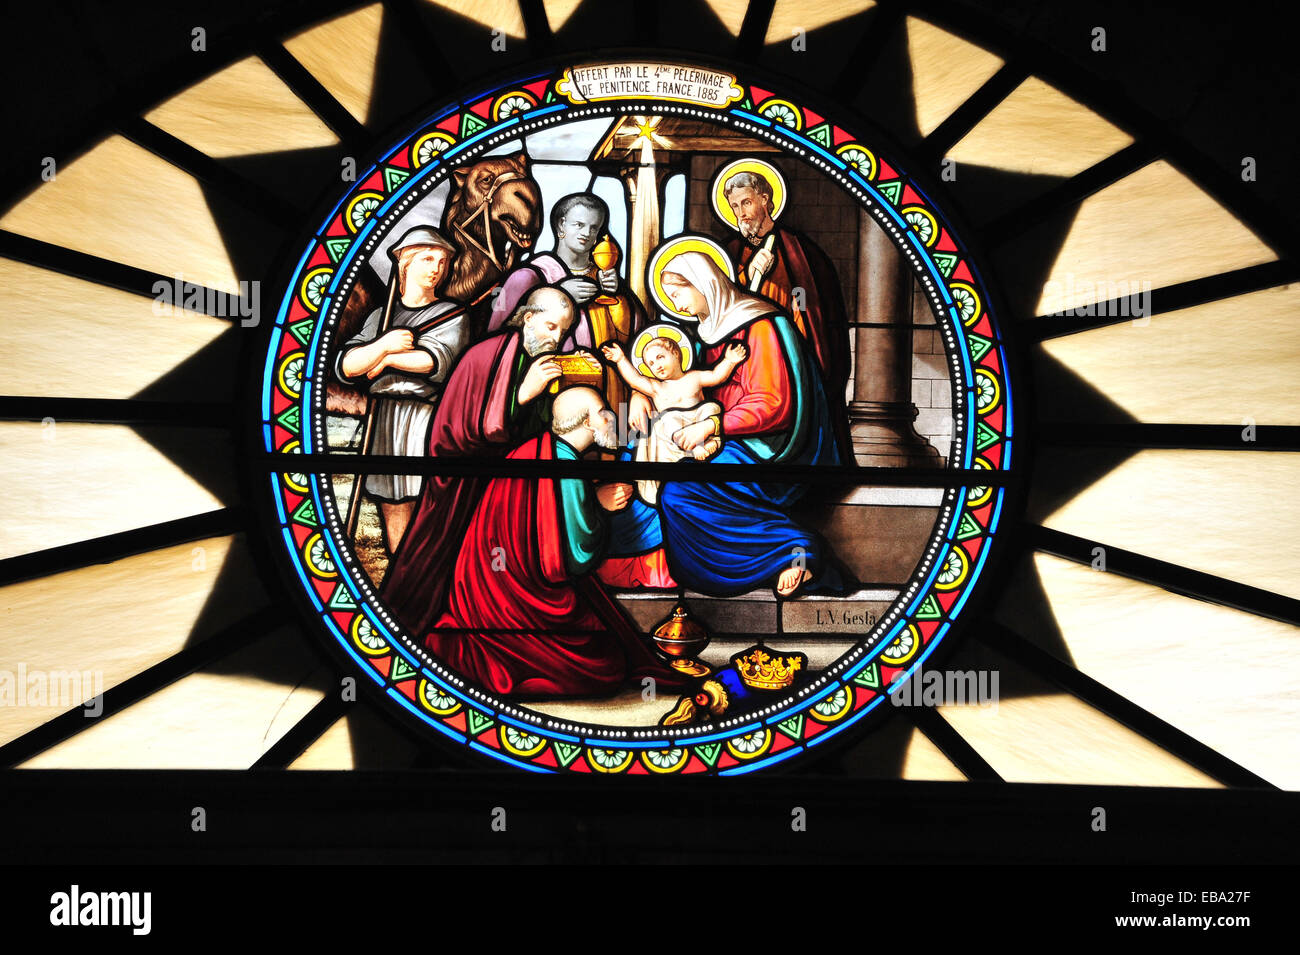 Stained Glass Window, Holy Family, St. Catherine Church